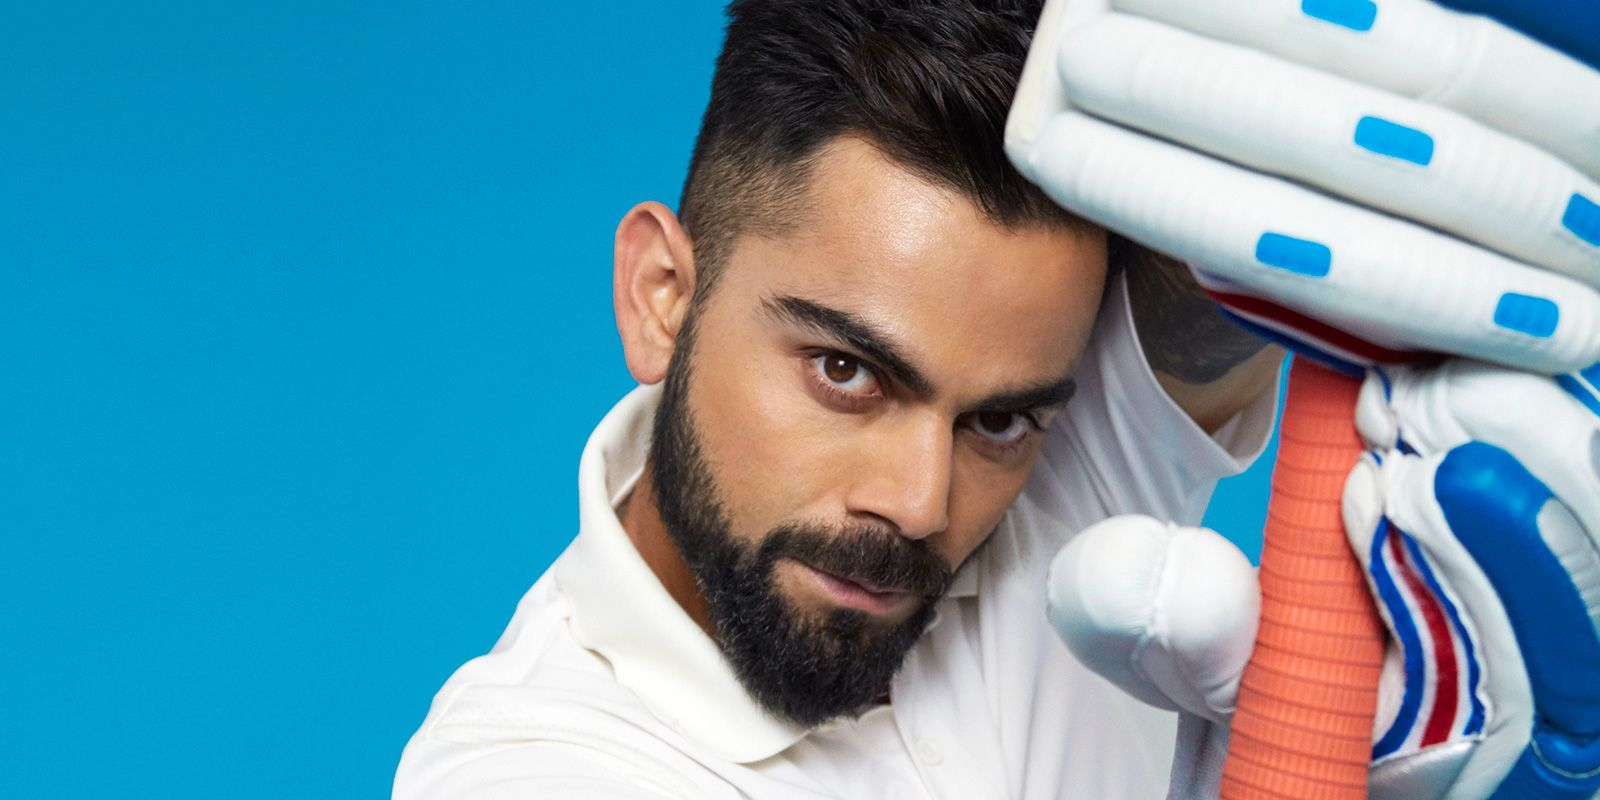 The Strange Life Of India S Cricket God Virat Kohli